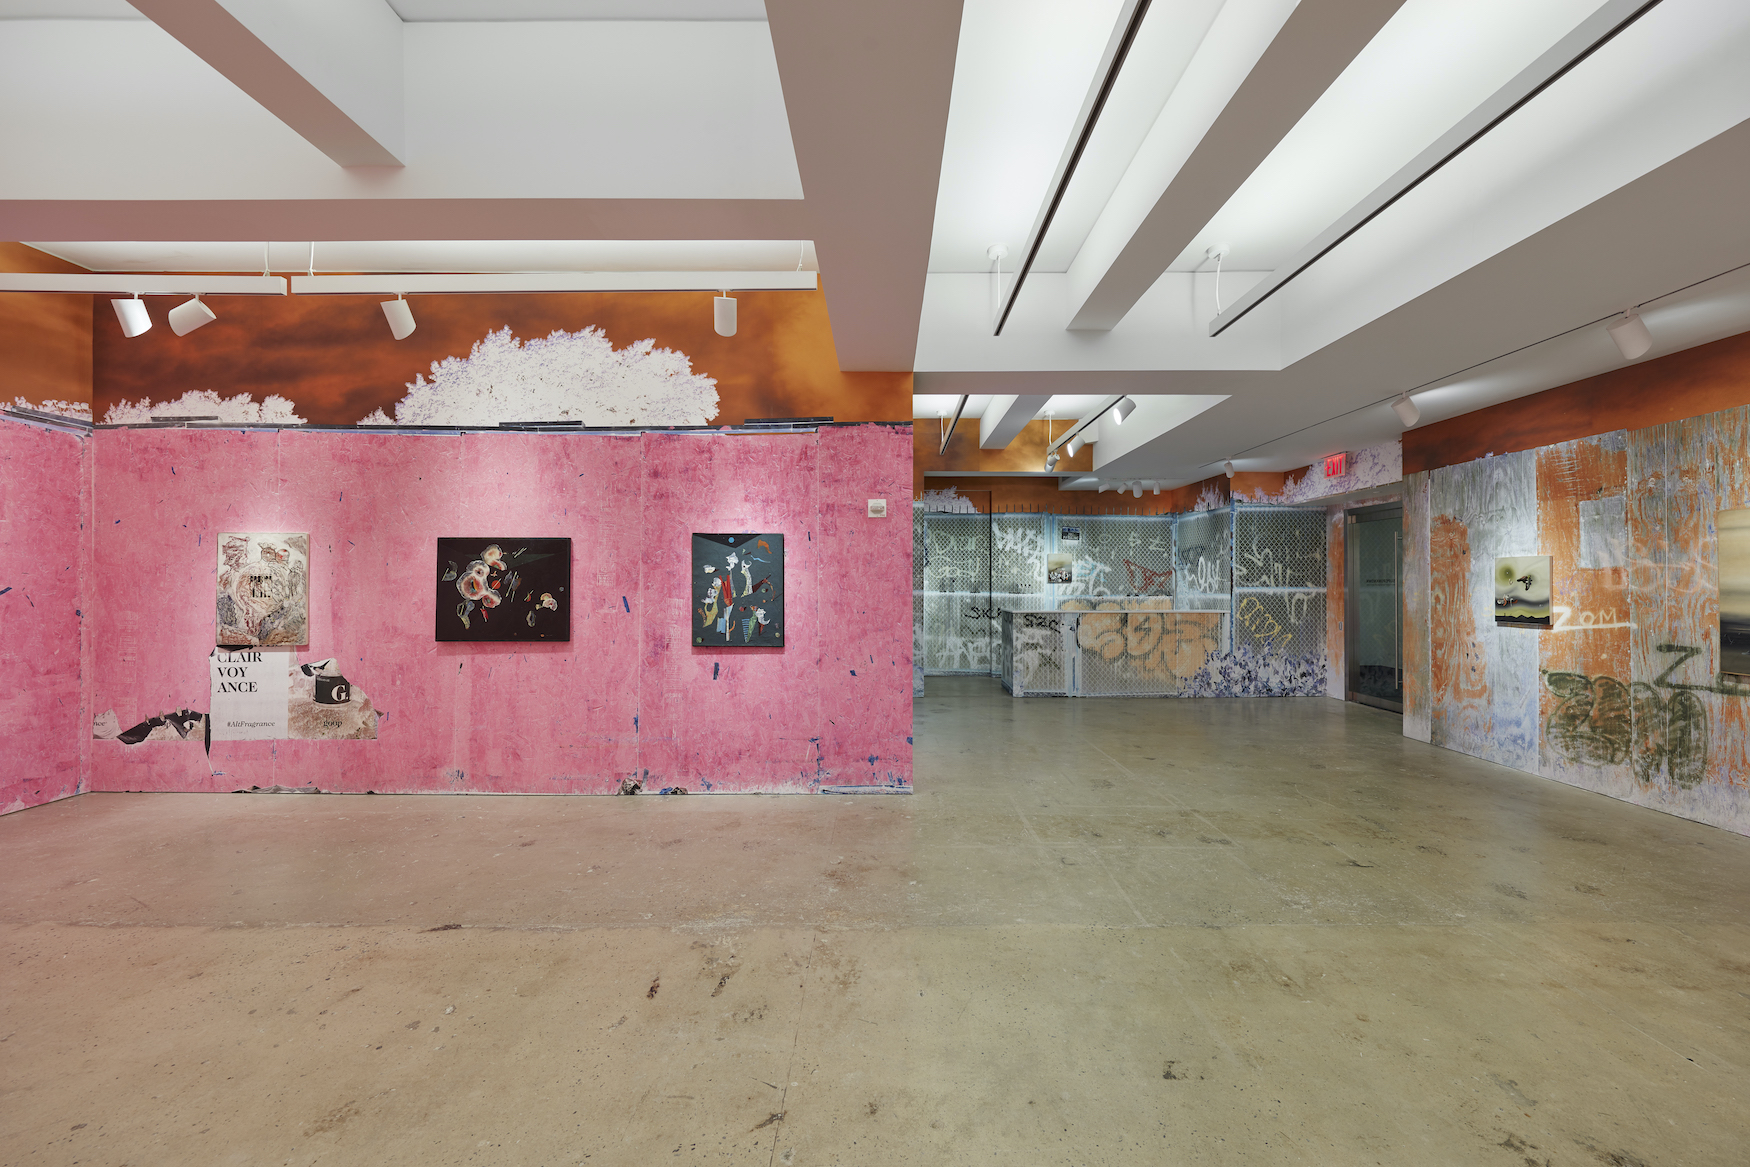 Installation view 3, SUPERUNKNOWN , 2020, Courtesy of Nahmad Contemporary